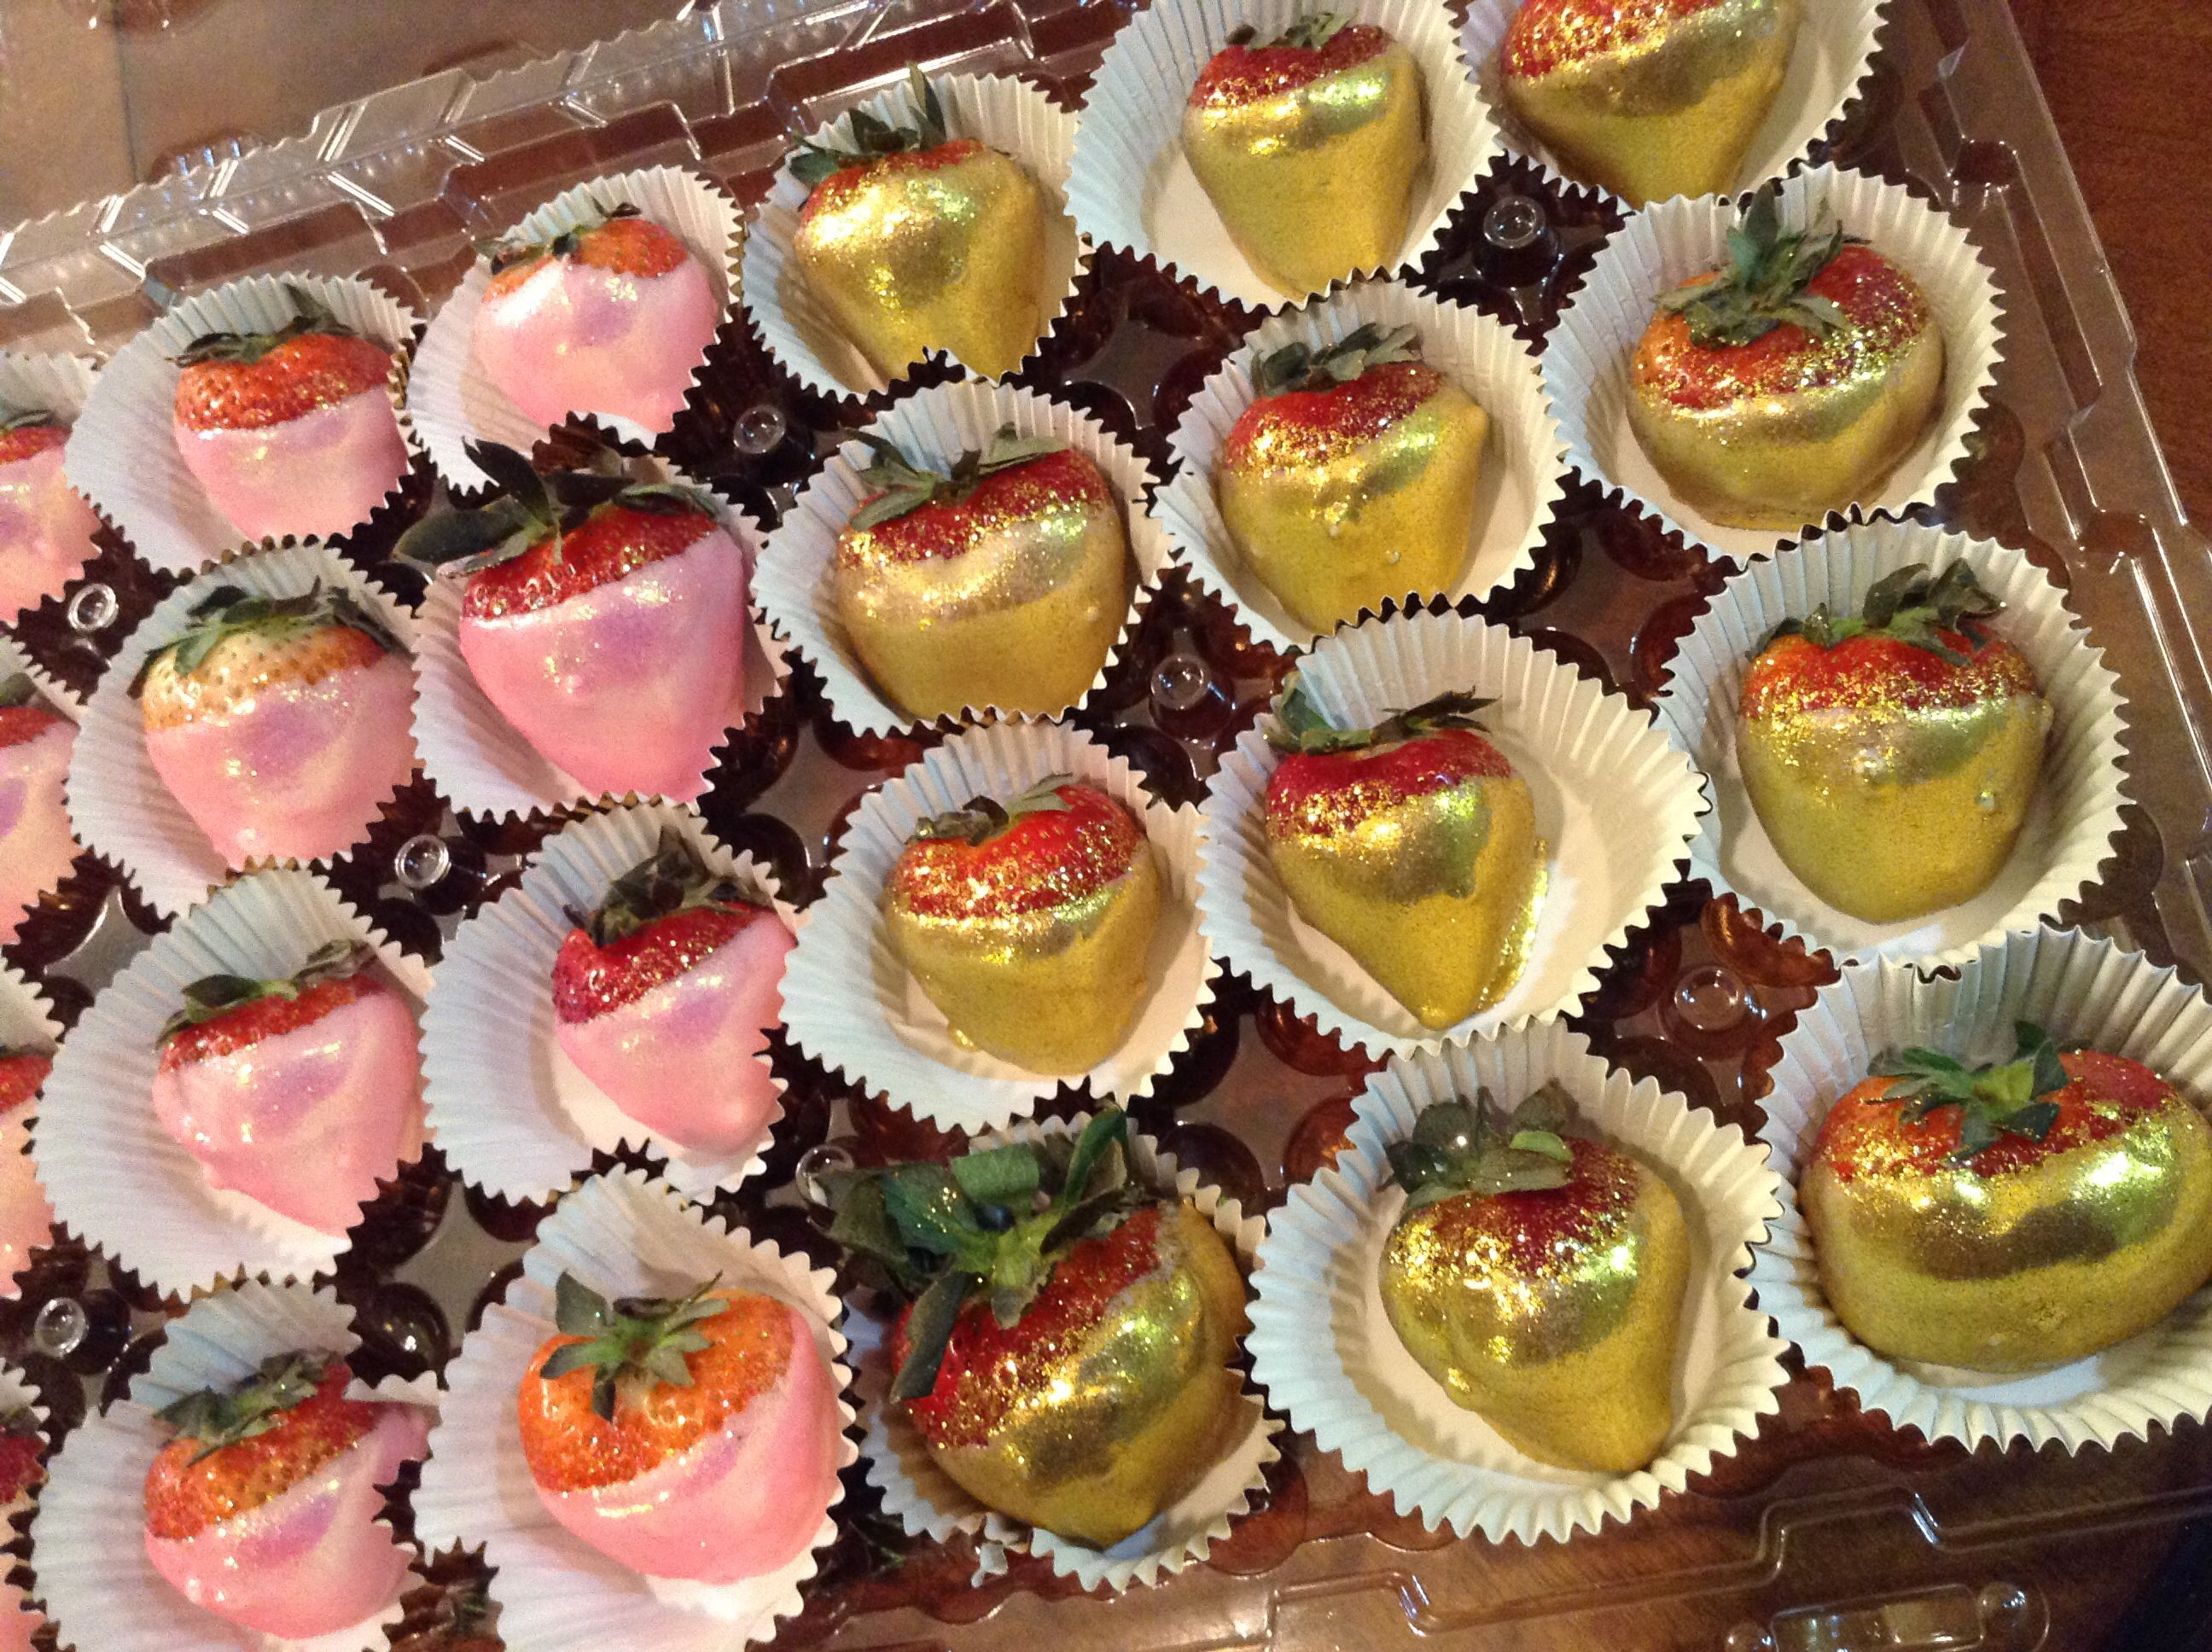 Chocolate covered strawberries infused with Hennessy alcohol adult ...